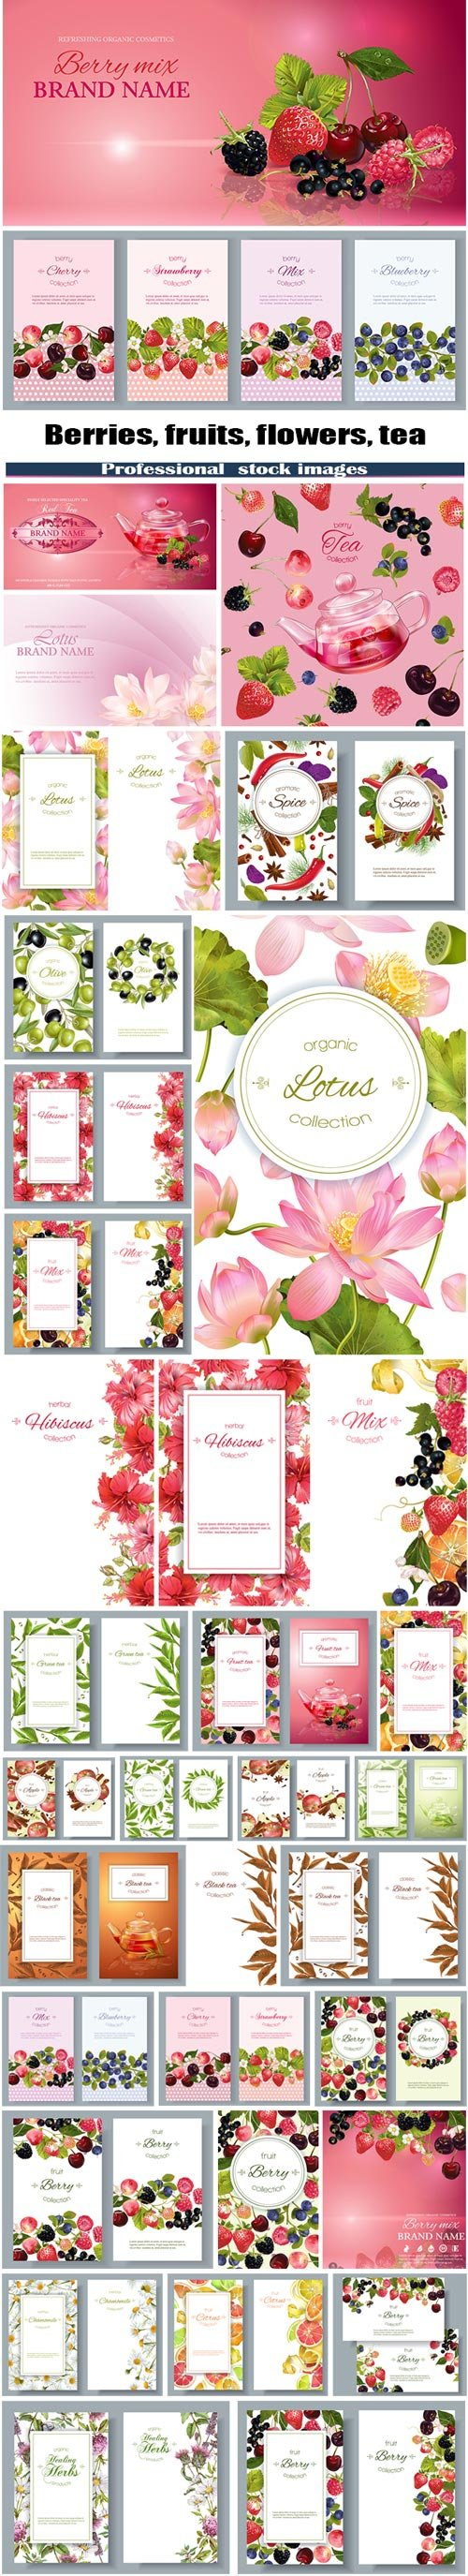 Berries, fruits, flowers, tea mix banners